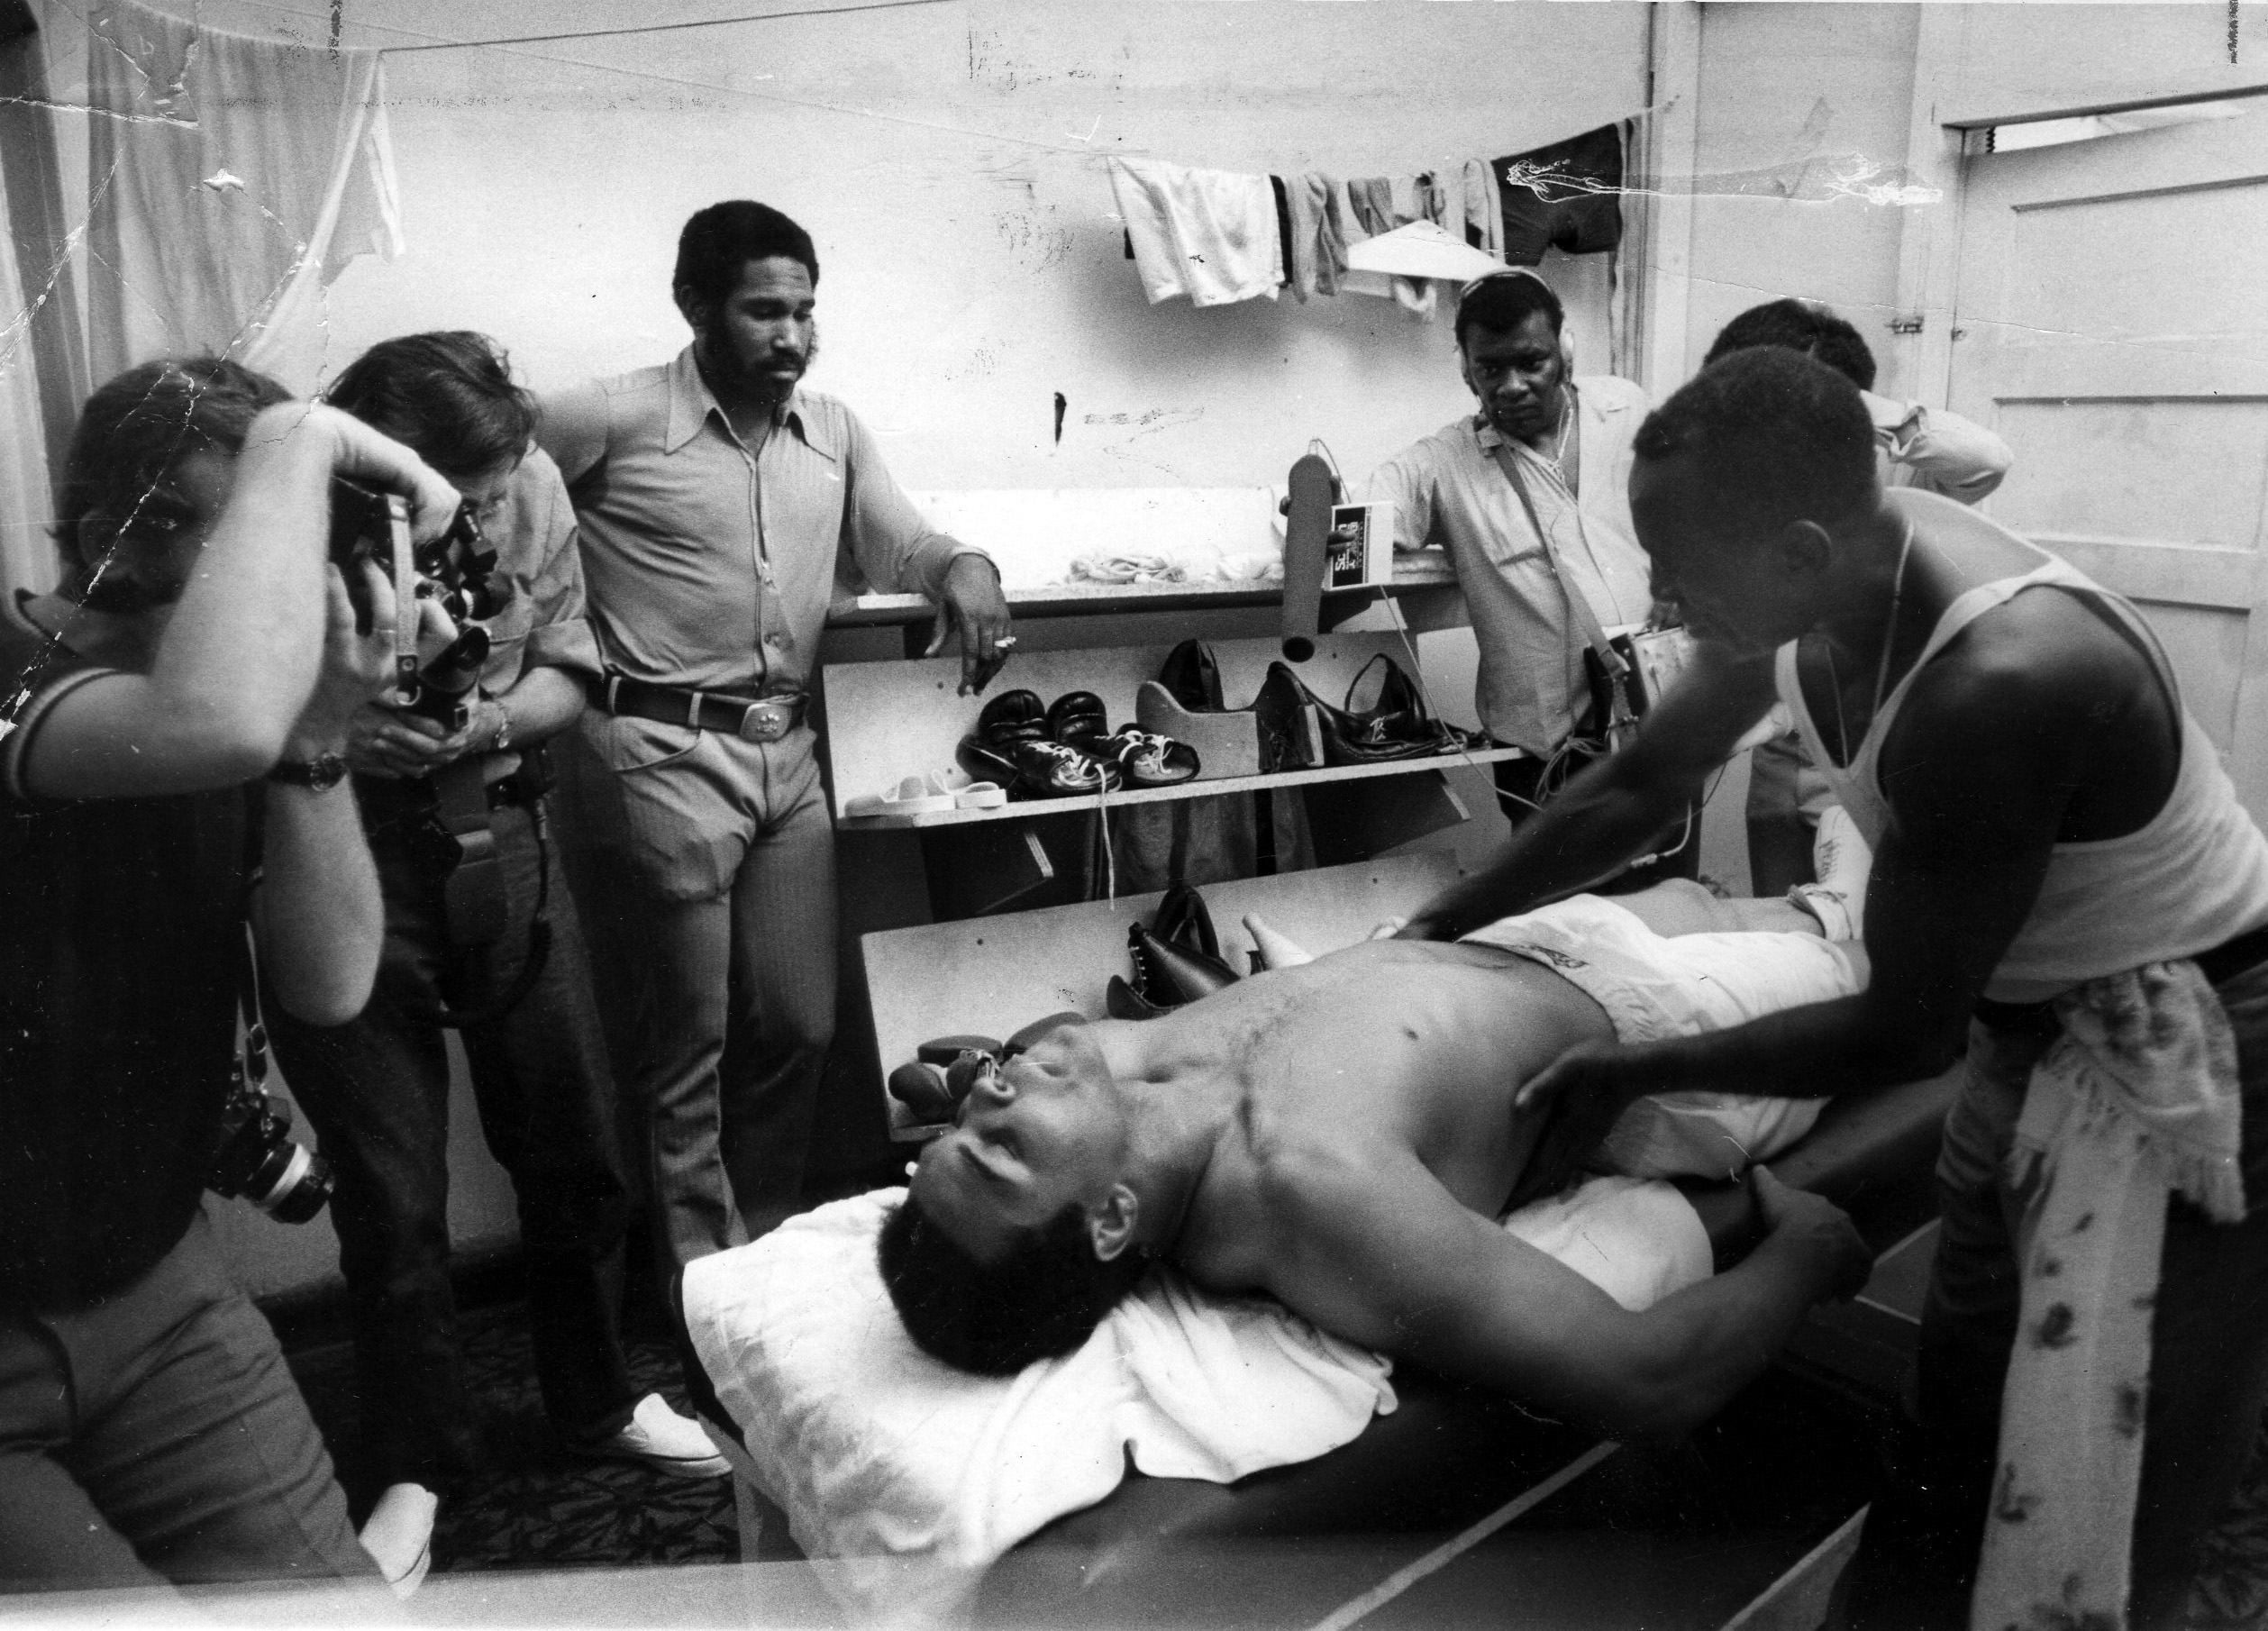 Feb. 25, 1971 - Florida, U.S. - February 25, 1971: Muhammad Ali gets a rub down by Luis Sarria after working out in Miami Beach's 5th Street gym., Image: 256440932, License: Rights-managed, Restrictions: * Florida Sun Sentinel Rights OUT *, Model Release: no, Credit line: Profimedia, Zuma Press - News